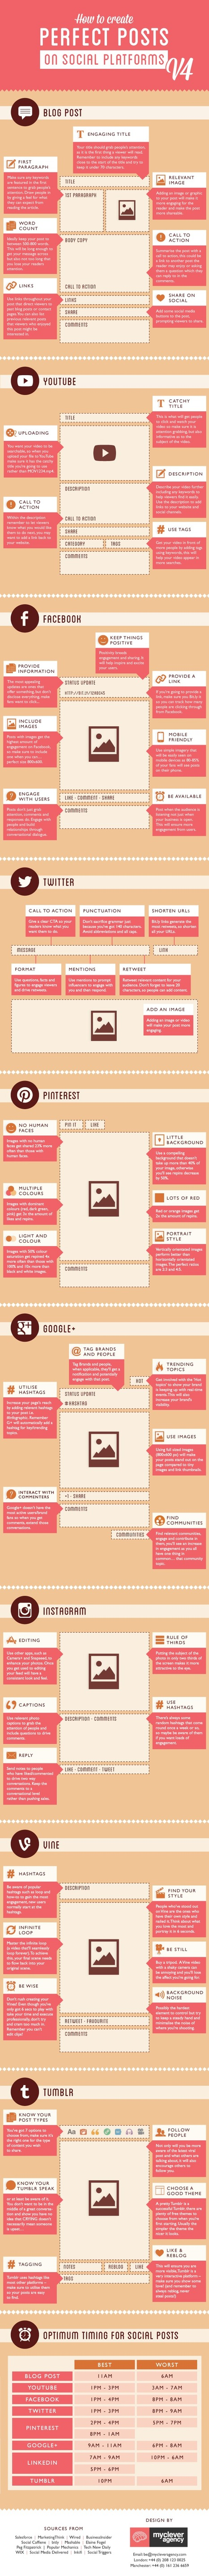 The art of creating perfect Social Media posts - infographic | Curate Share and Collaborate with Newsdeck | Scoop.it